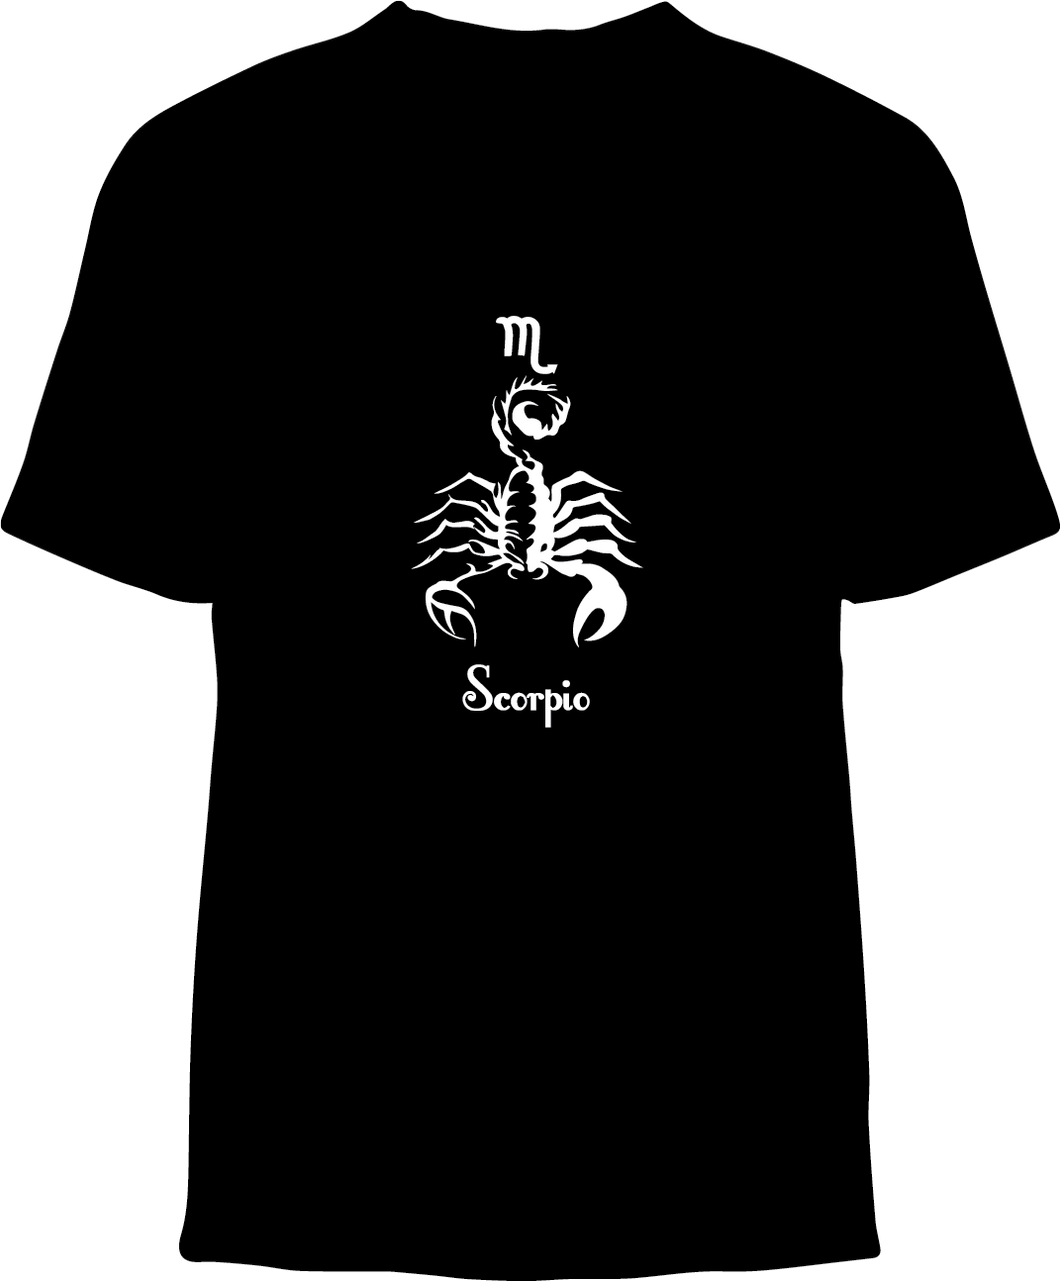 Skelebone Short Sleeve T-shirt, Scorpio Oct 23 - Nov 21 Front Print